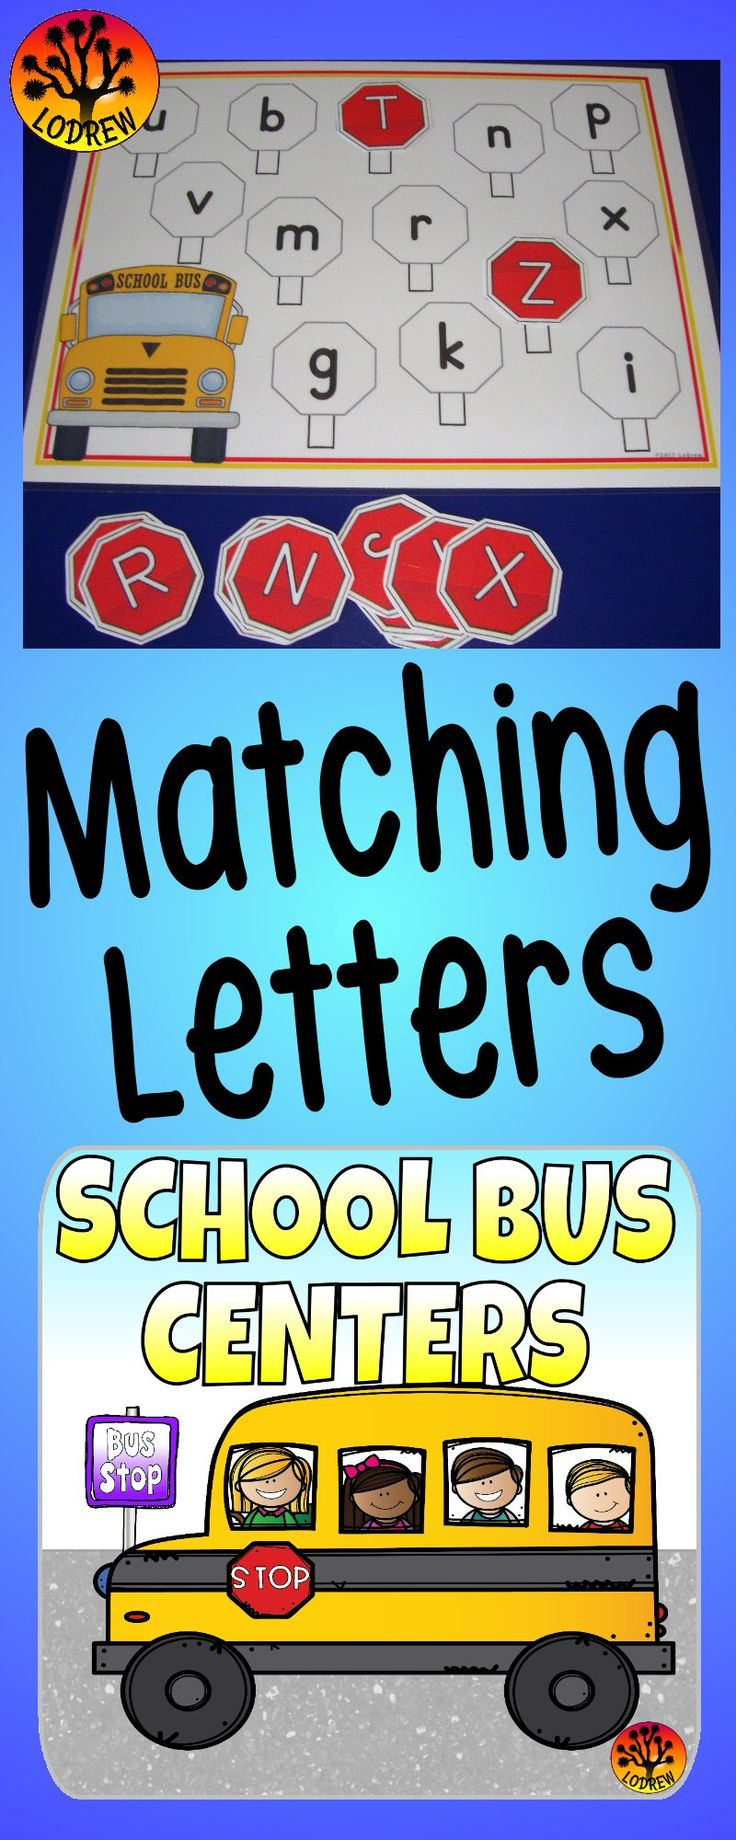 158 pages of school bus centers. Activities include beginning sounds, letter matching, color words, letter order, counting, tracing, ten frames, subitizing, shapes, scissor skills, cardinality, number sets, fine motor, literacy, math, and more. For kindergarten, preschool, SPED, child care, homeschool, or any early childhood setting.